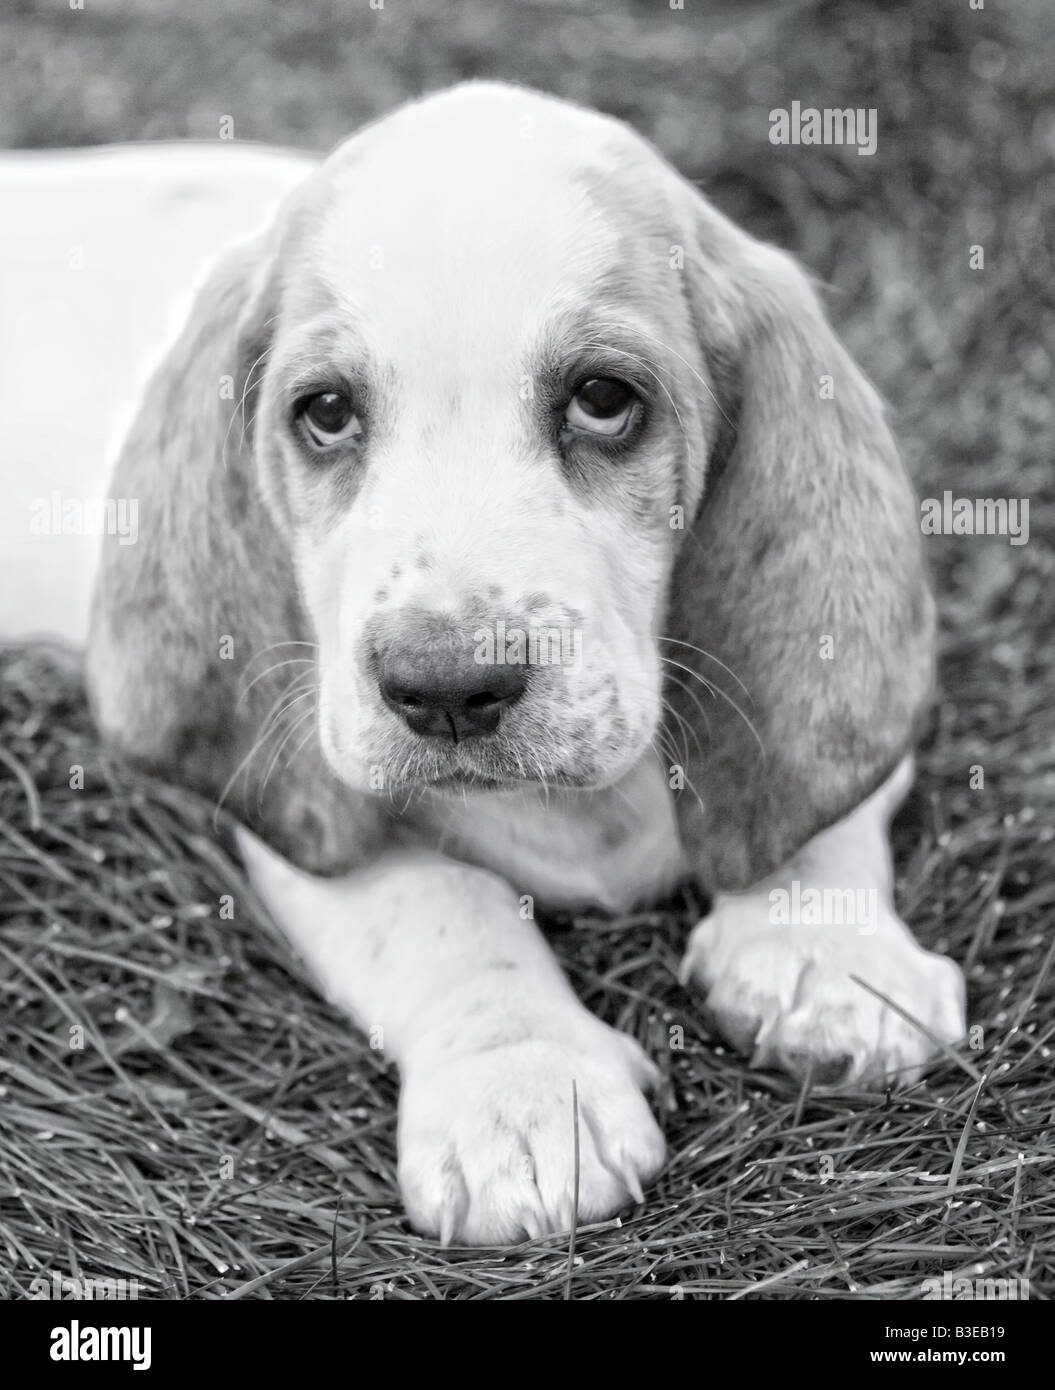 Cute Basset Hound in monotone - Stock Image